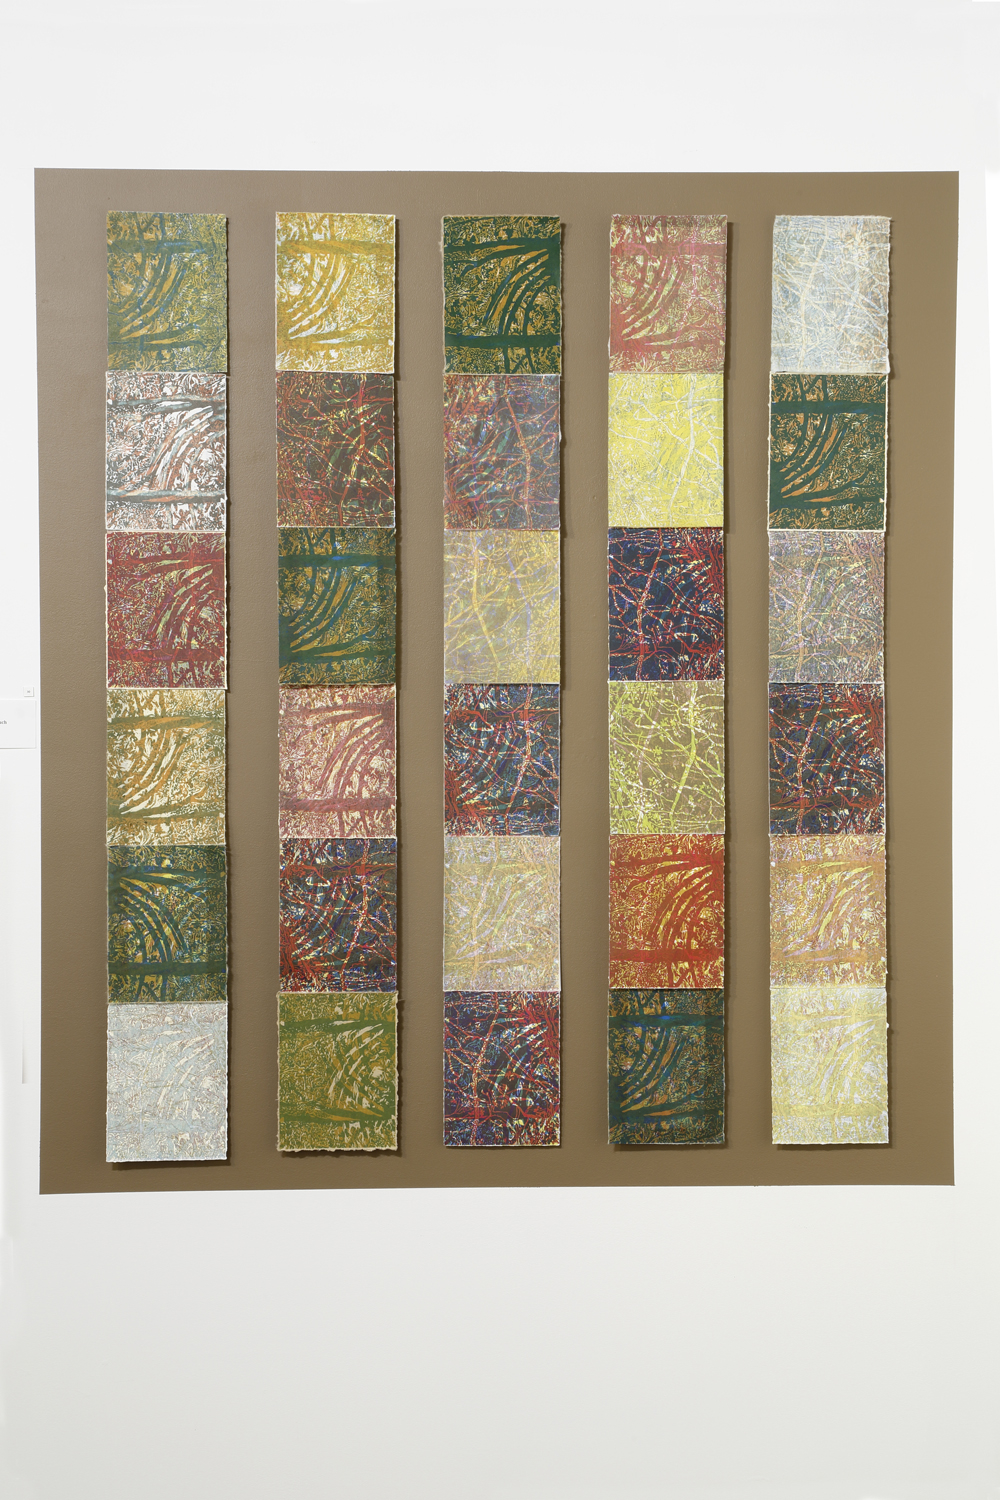 """Seasonal Rhythms"" by Susan Moffett, 42x54in, relief Monoprint Installation, $2,250 